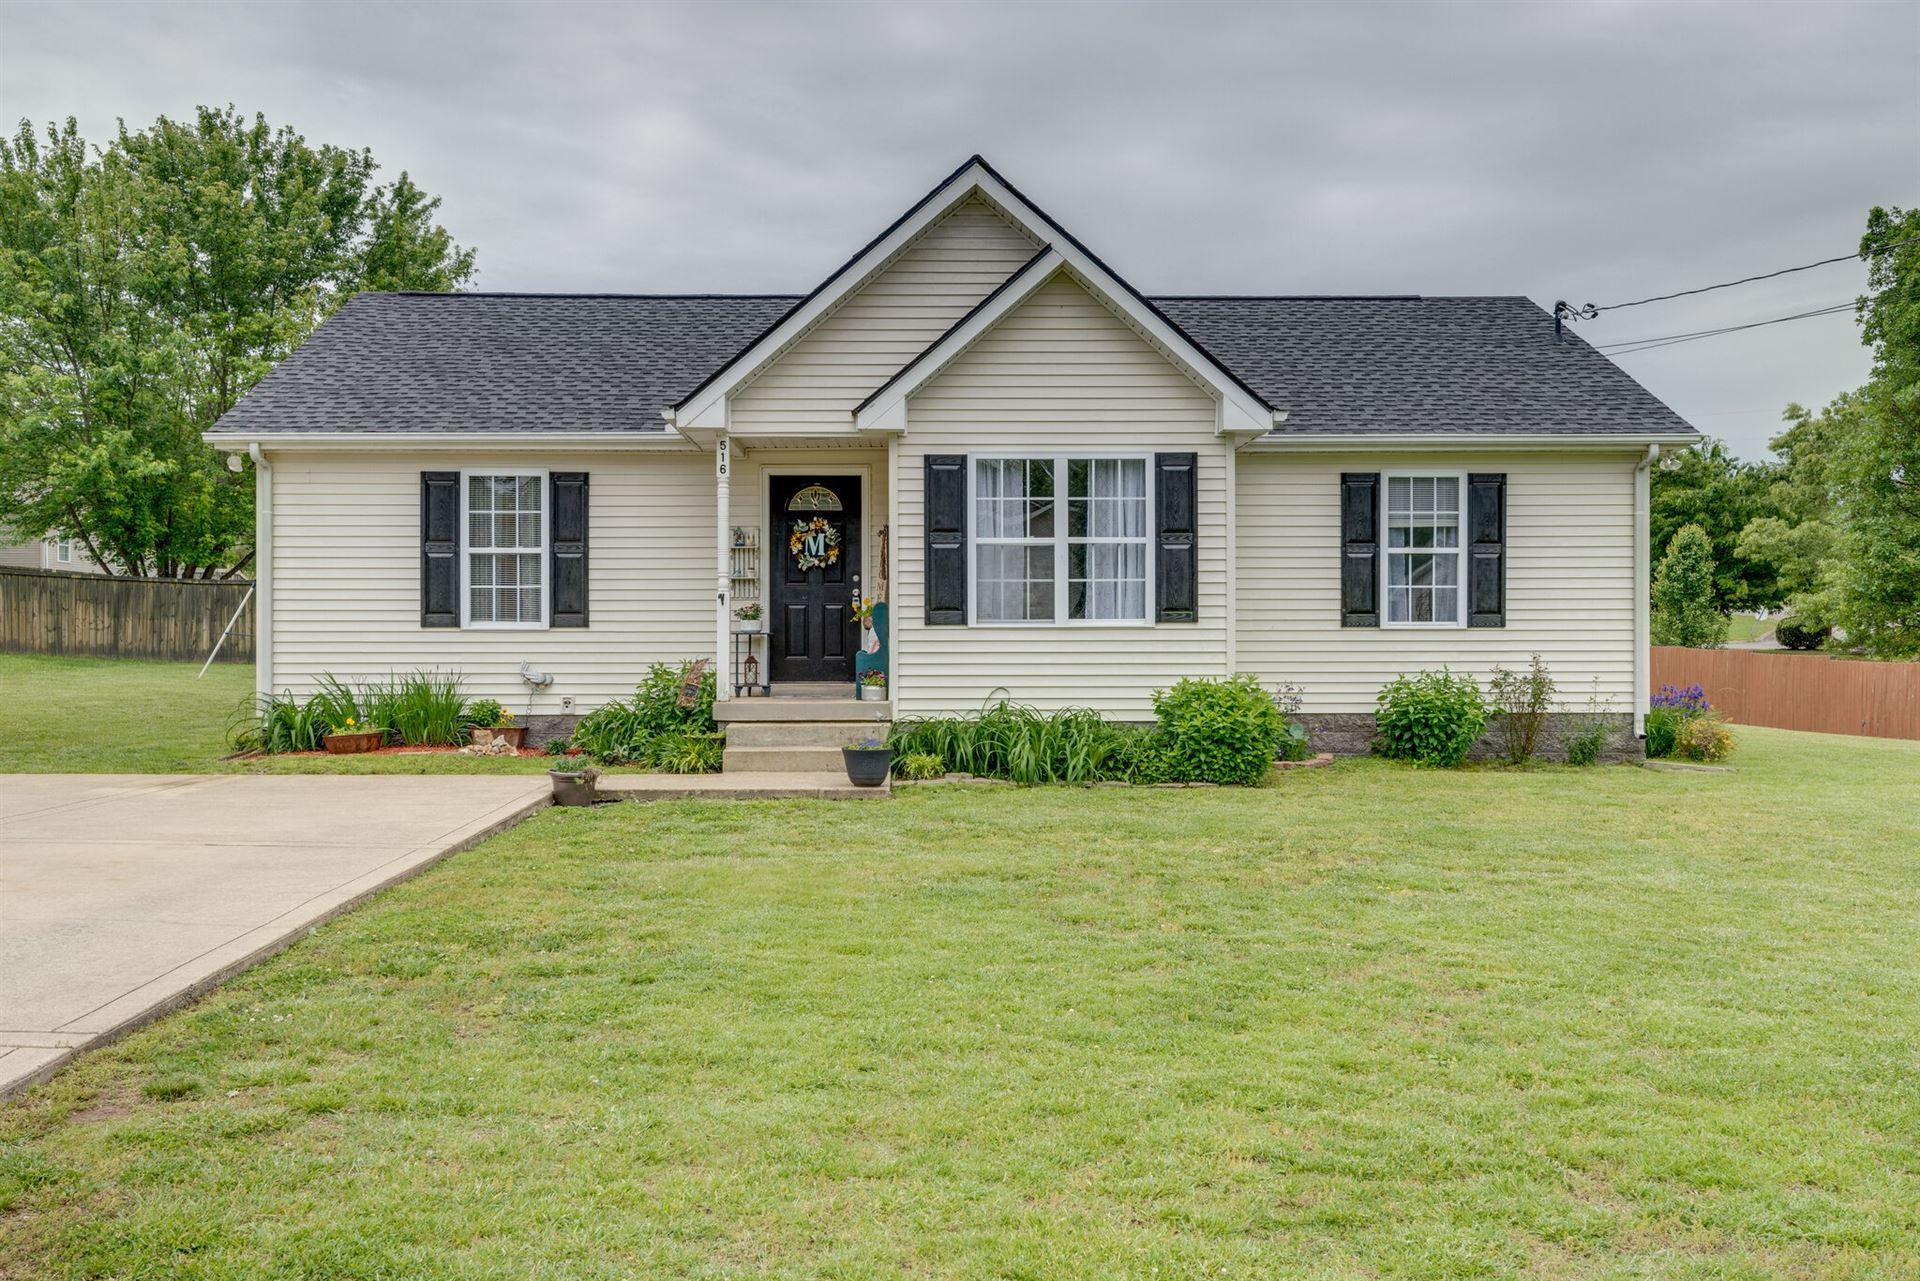 516 Corlew Cir, White Bluff, TN 37187 - MLS#: 2251970